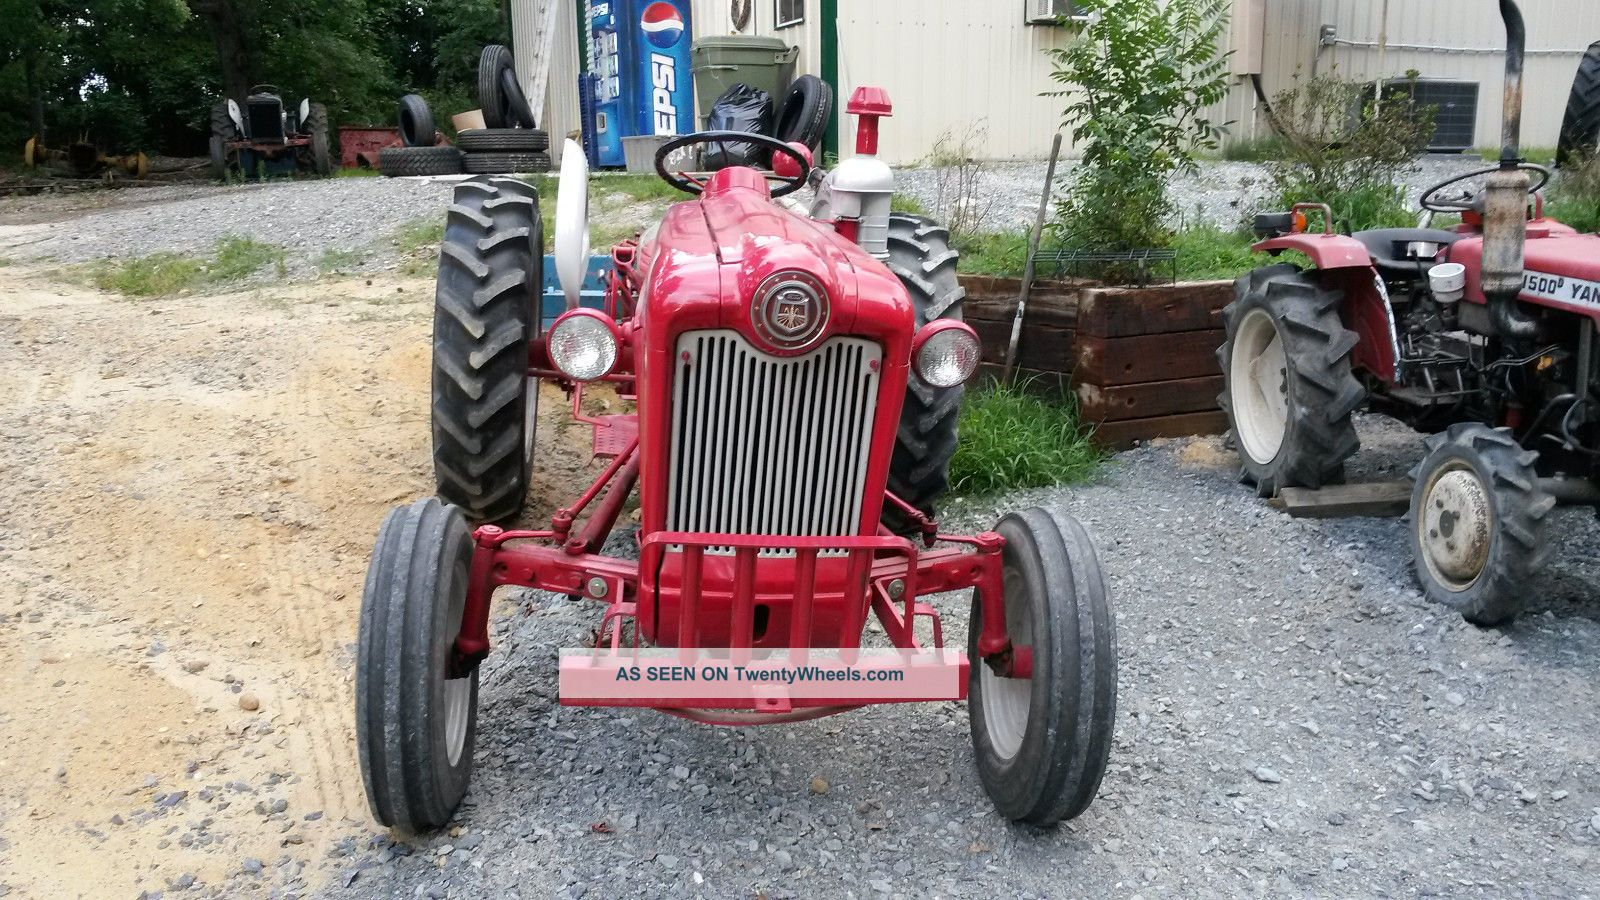 Ford Workmaster 601 Tractor Horsepower : Ford workmaster diesel tractor rare d